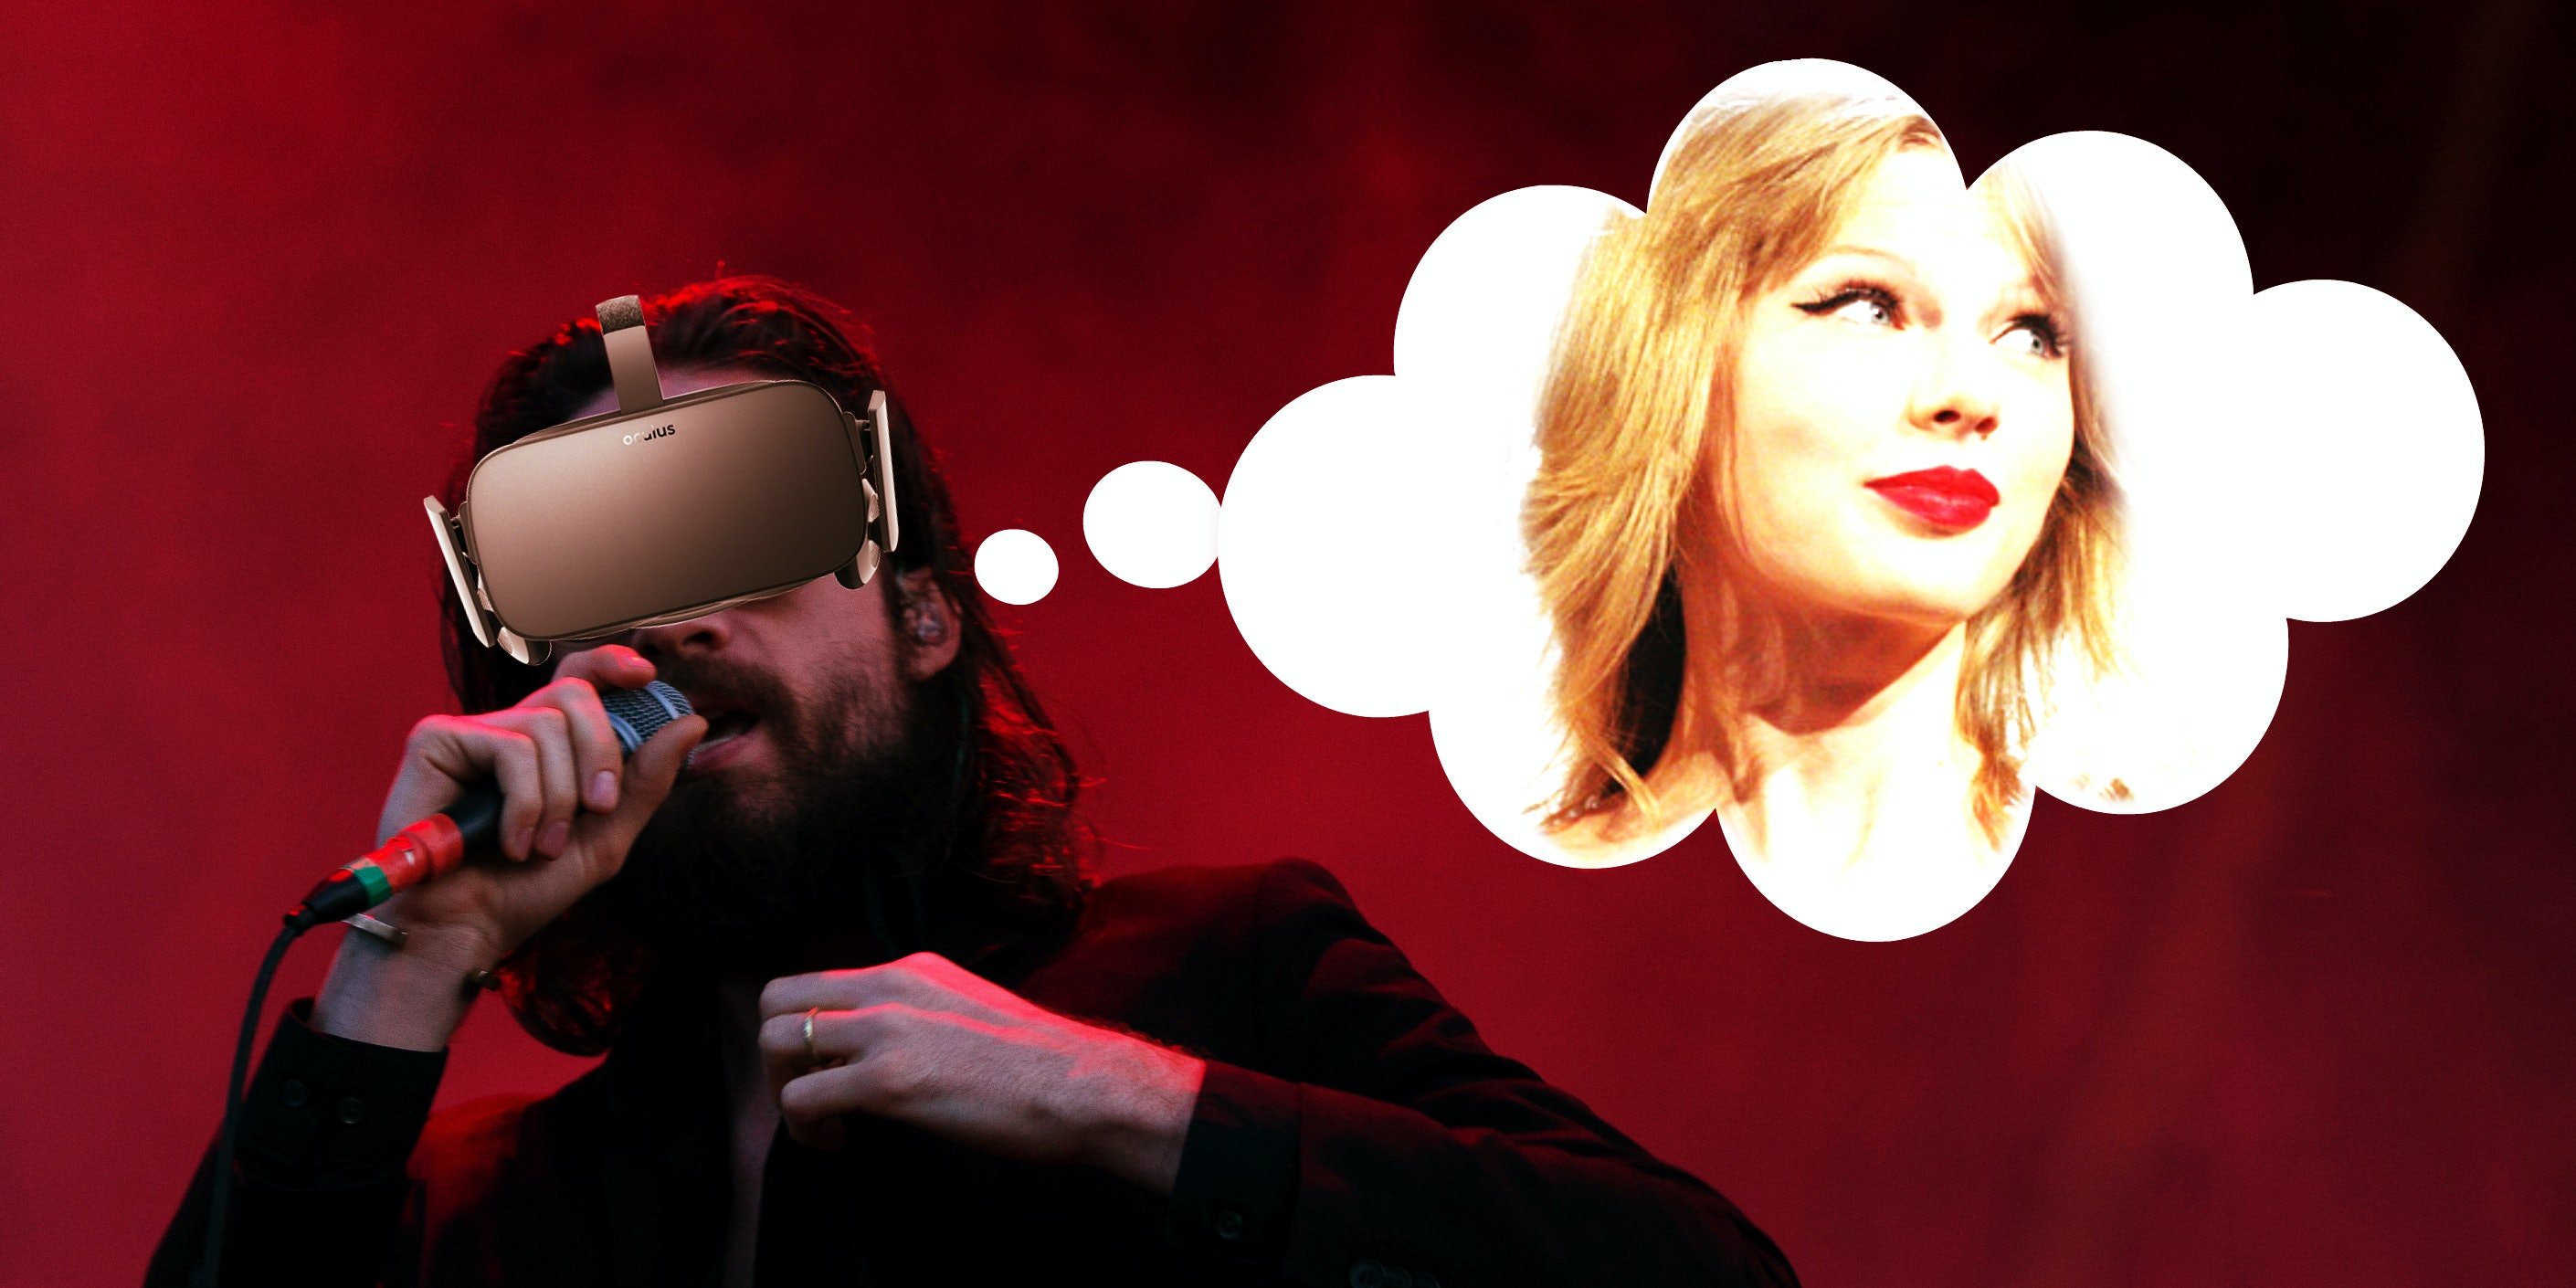 Father John Misty's new song about having VR sex with Taylor Swift raises issues about appearance and ownership.